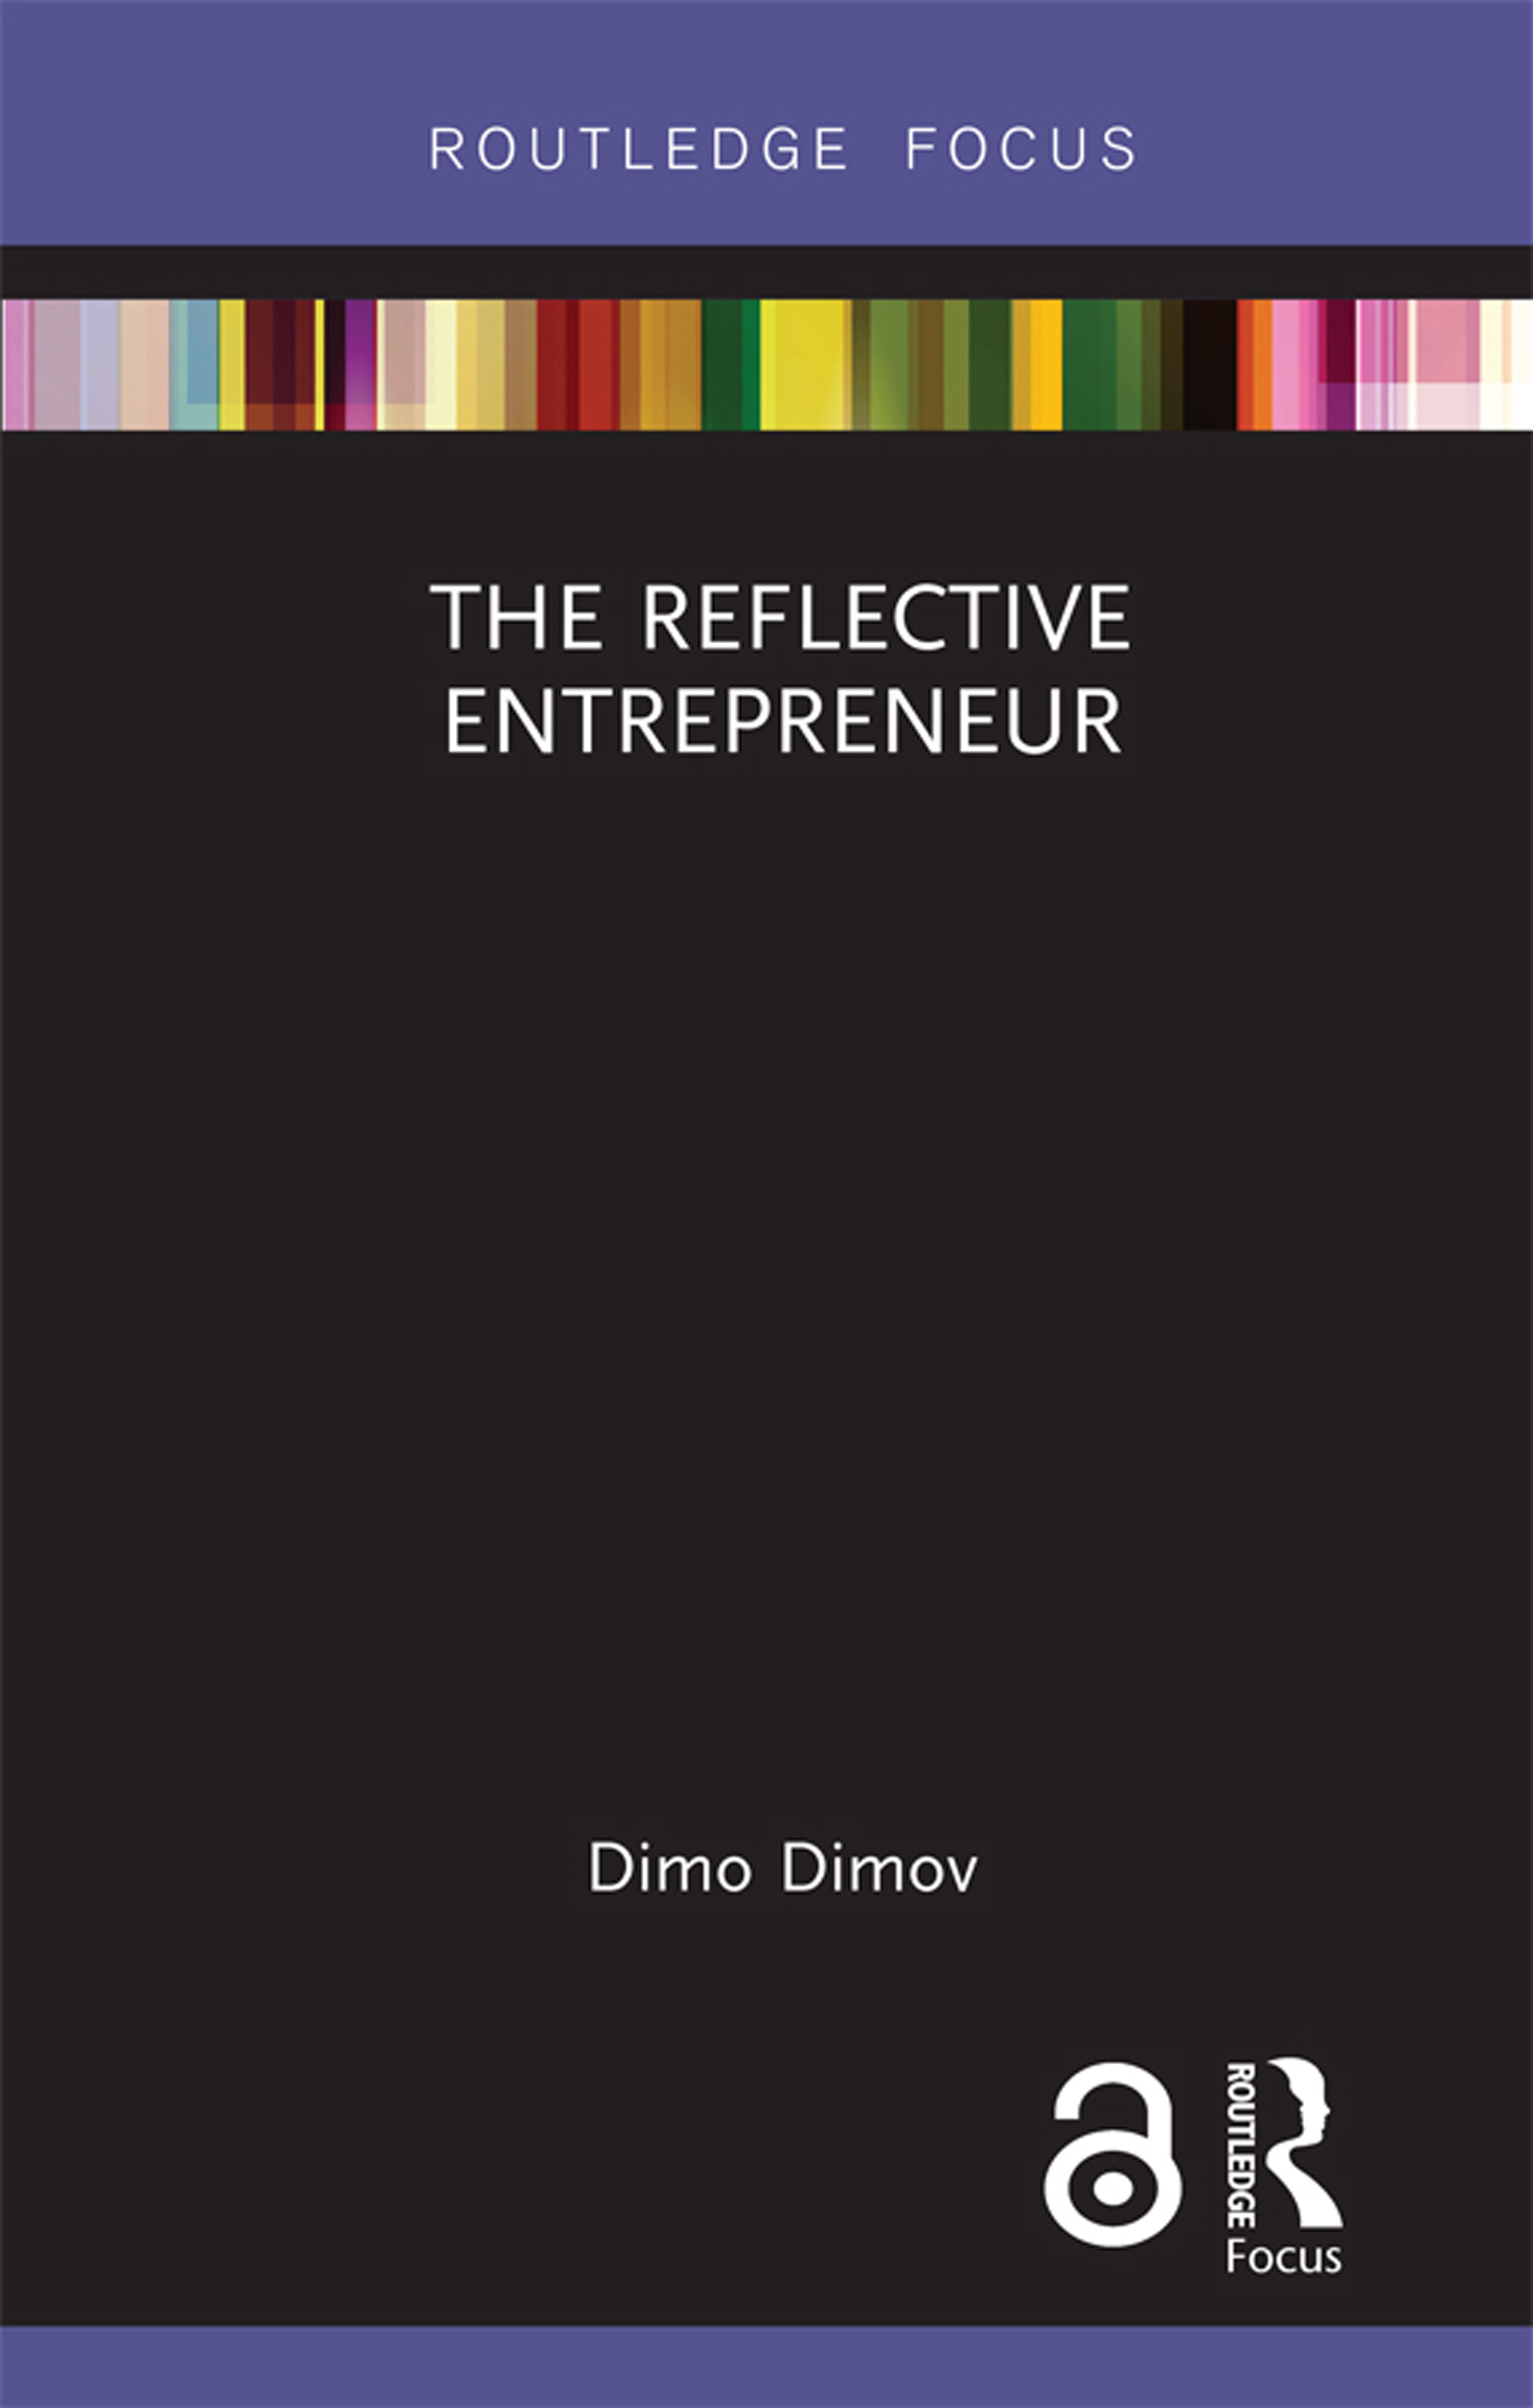 The Reflective Entrepreneur